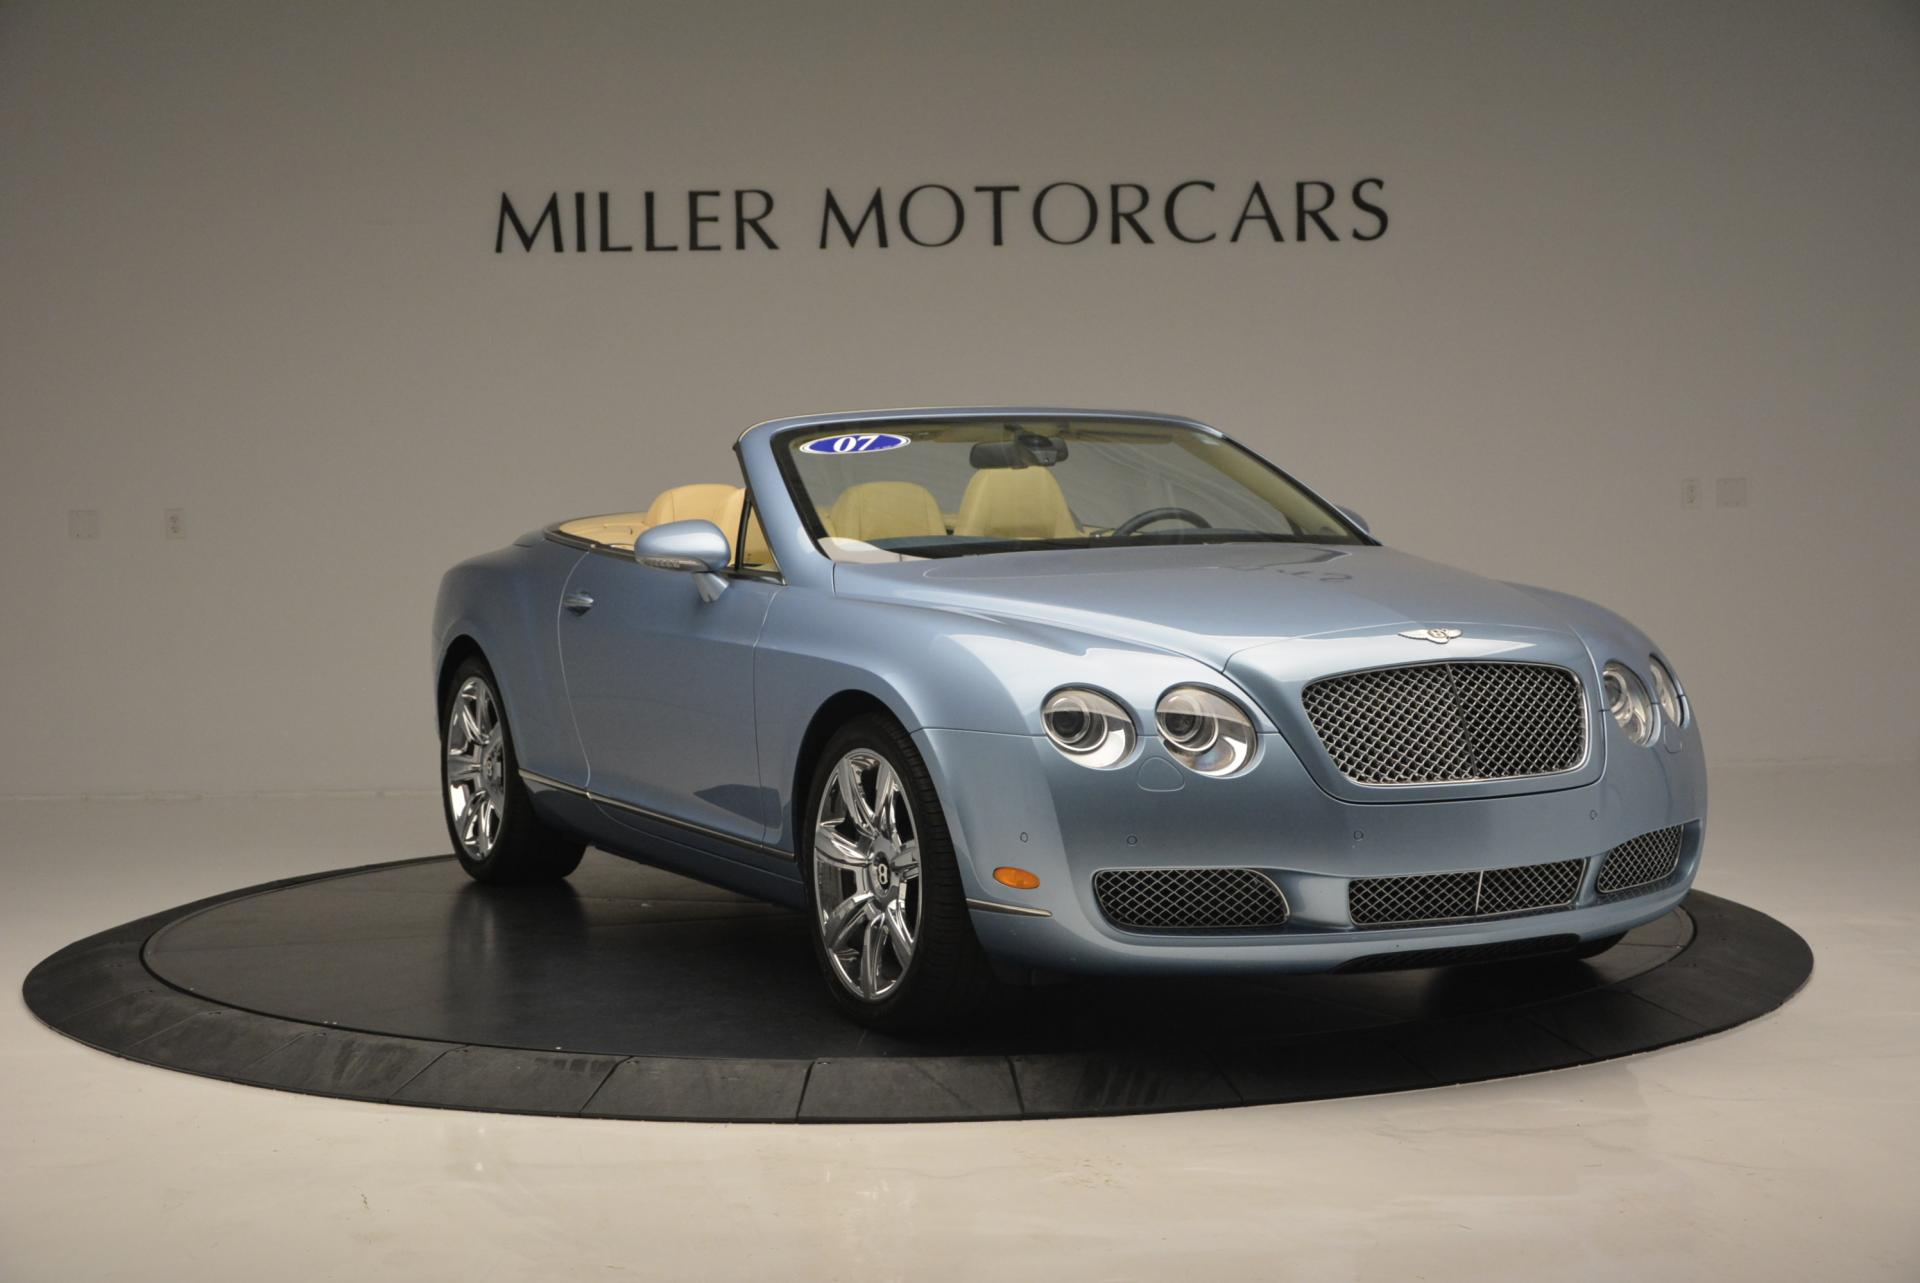 Used 2007 Bentley Continental GTC  For Sale In Westport, CT 495_p10